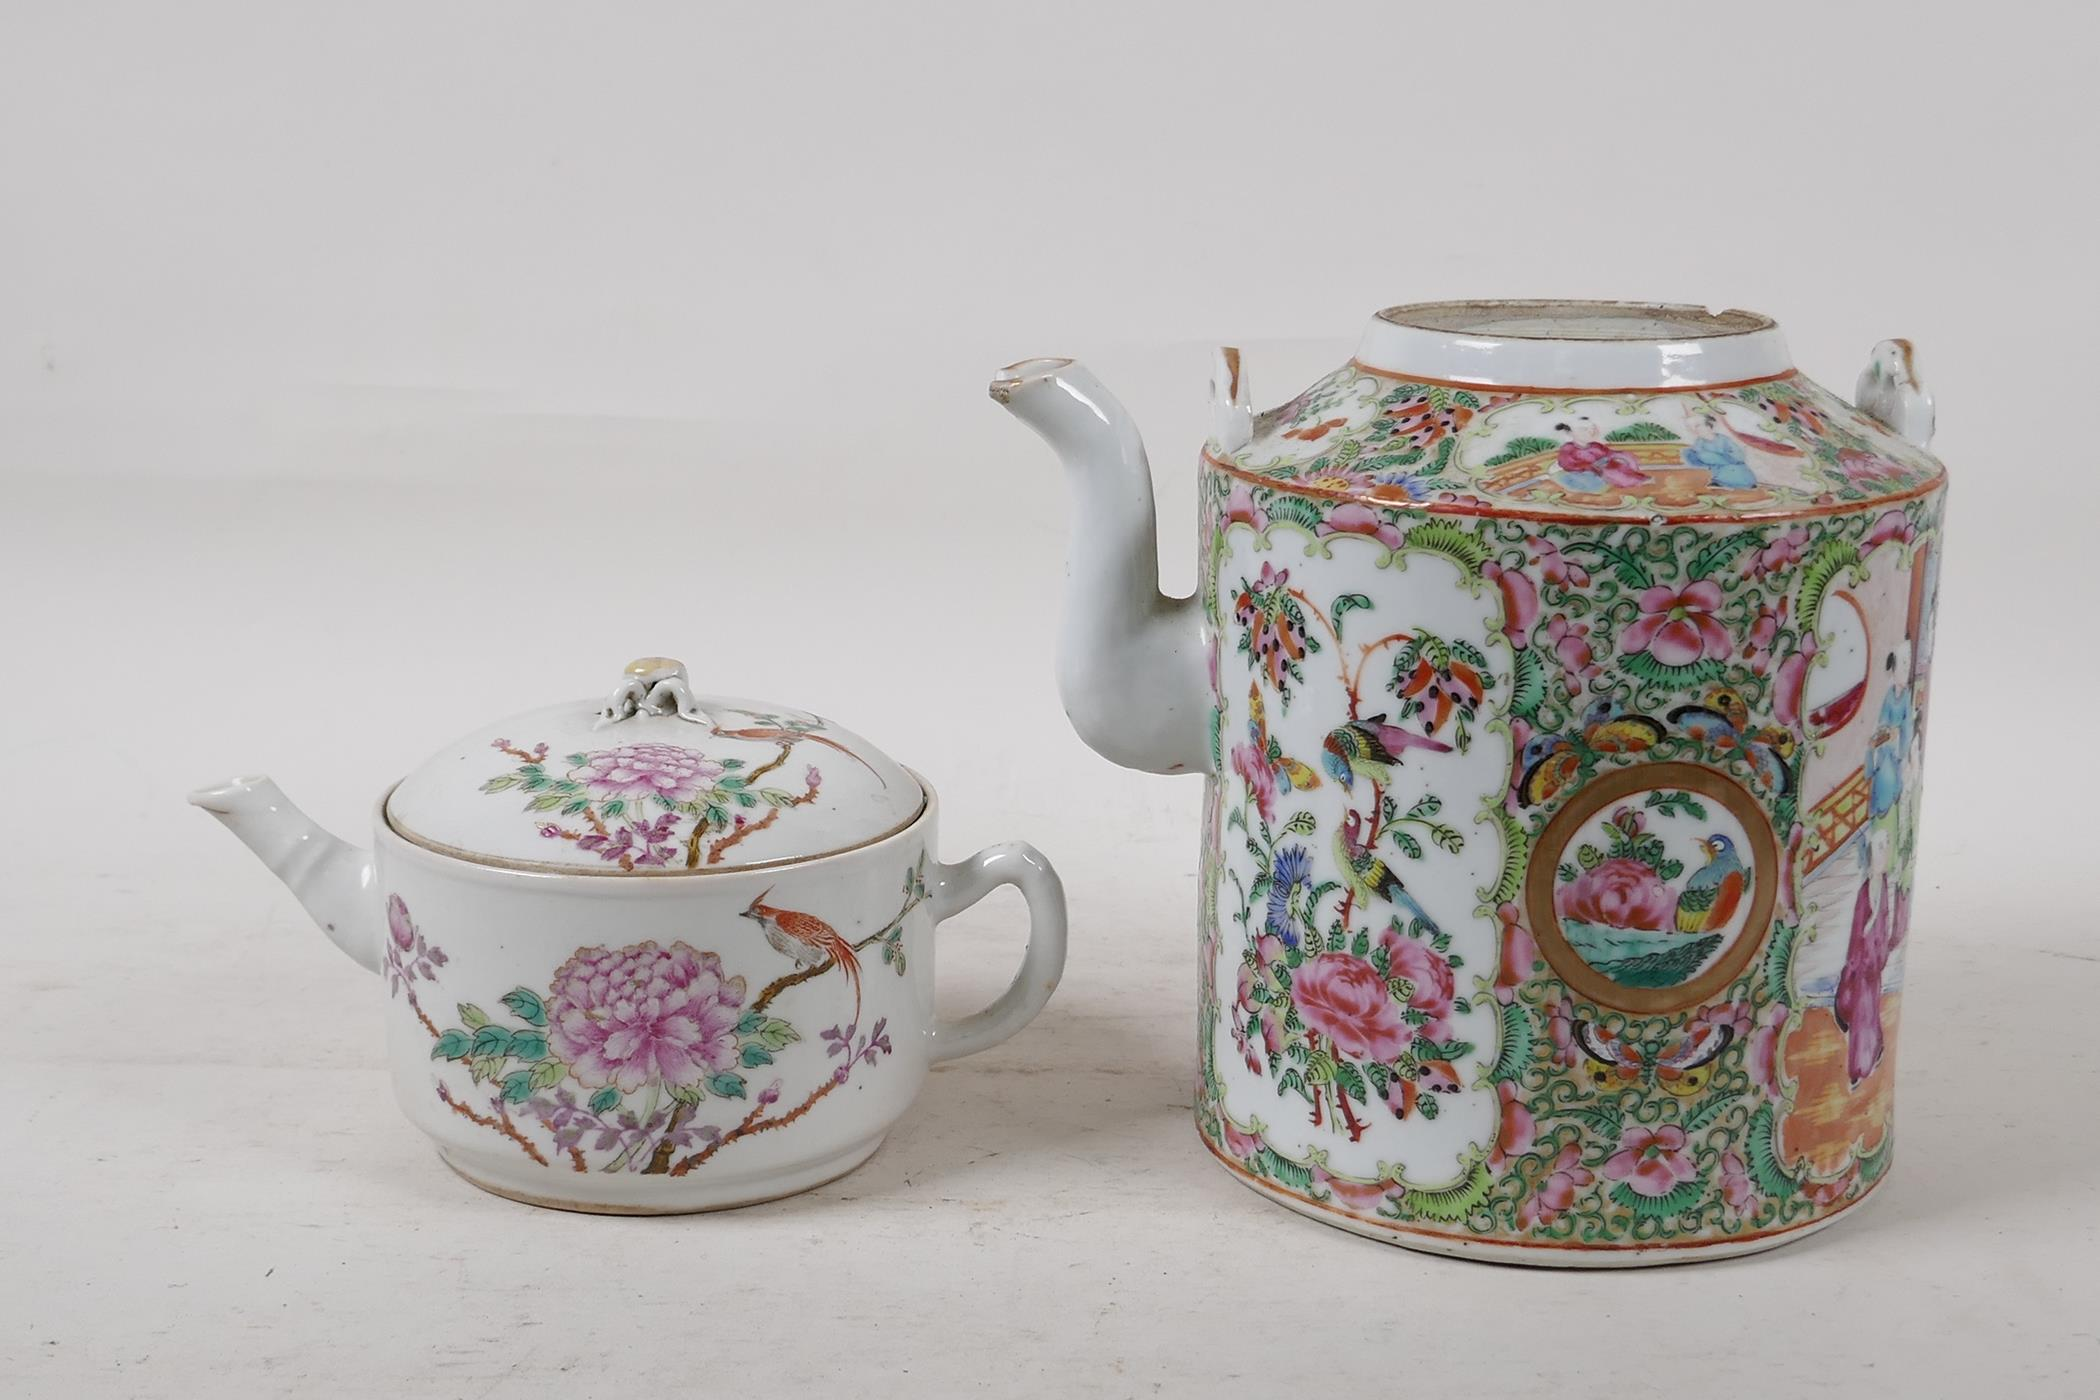 A Cantonese famille rose teapot decorated with figures, birds and flowers, A/F, and a republic